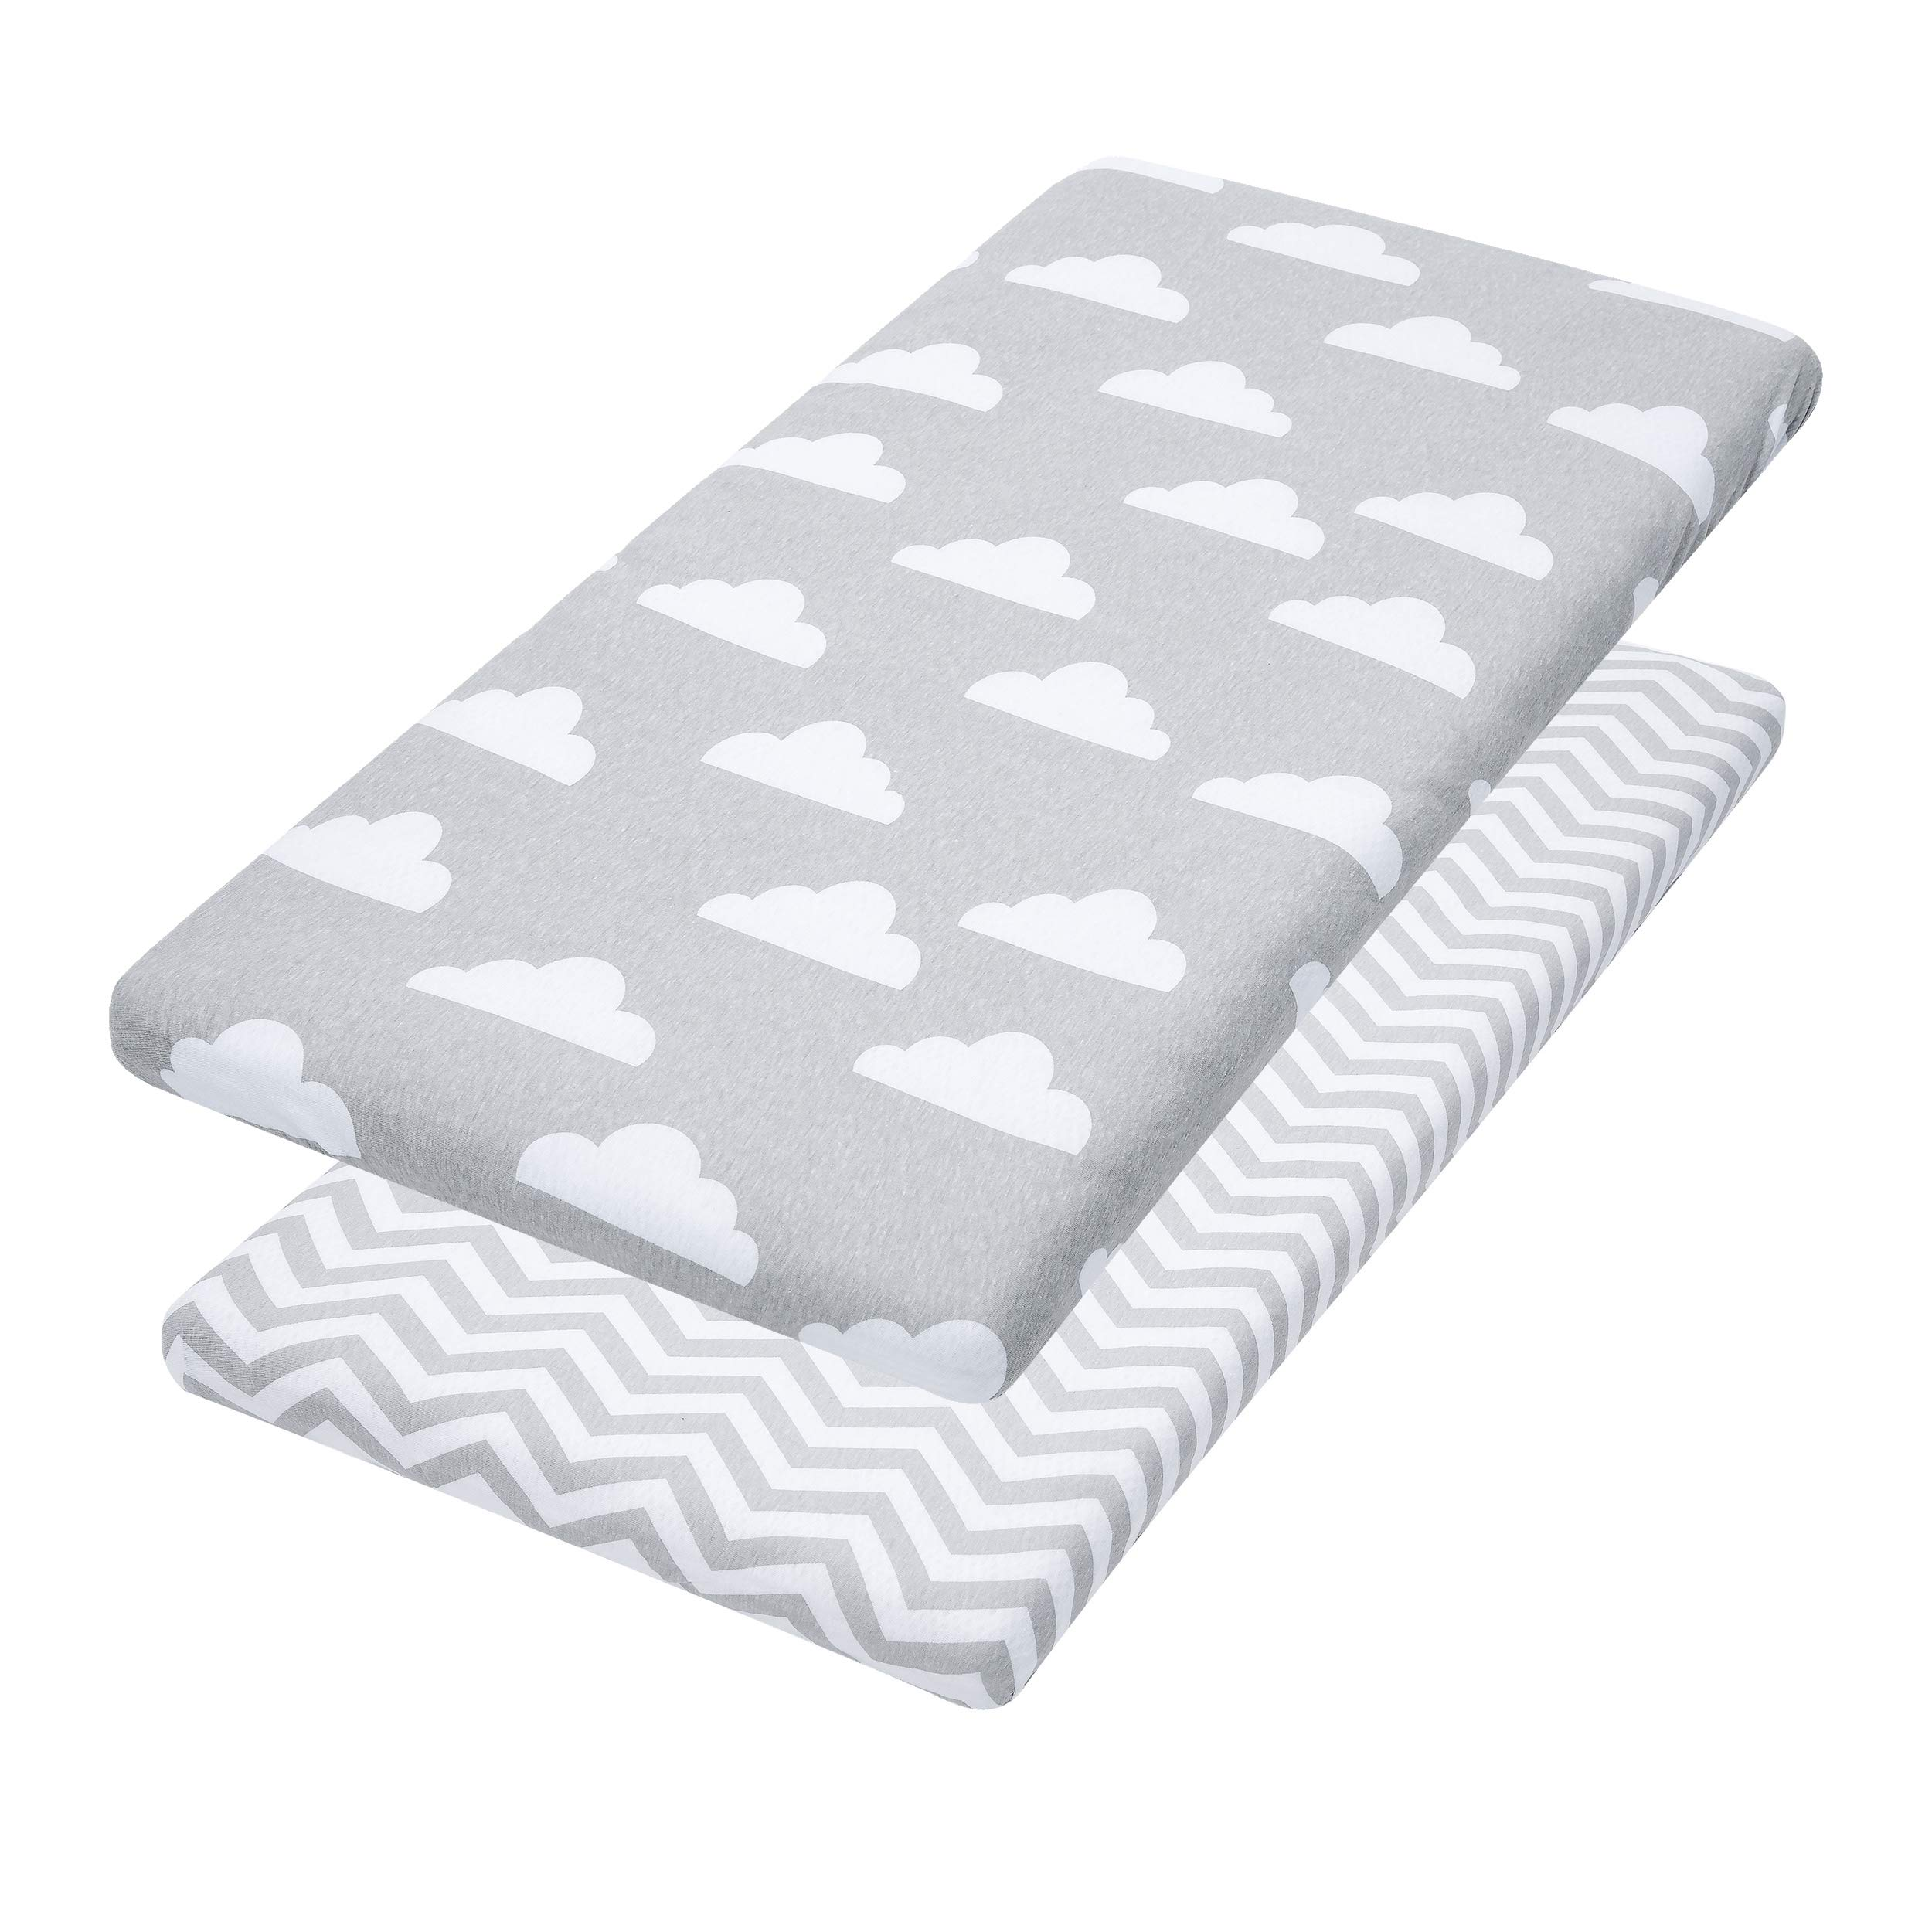 Bassinet Sheets, 2 Pack Cloud & Chevron Fitted Soft Jersey Cotton Cradle Bedding by Jomolly